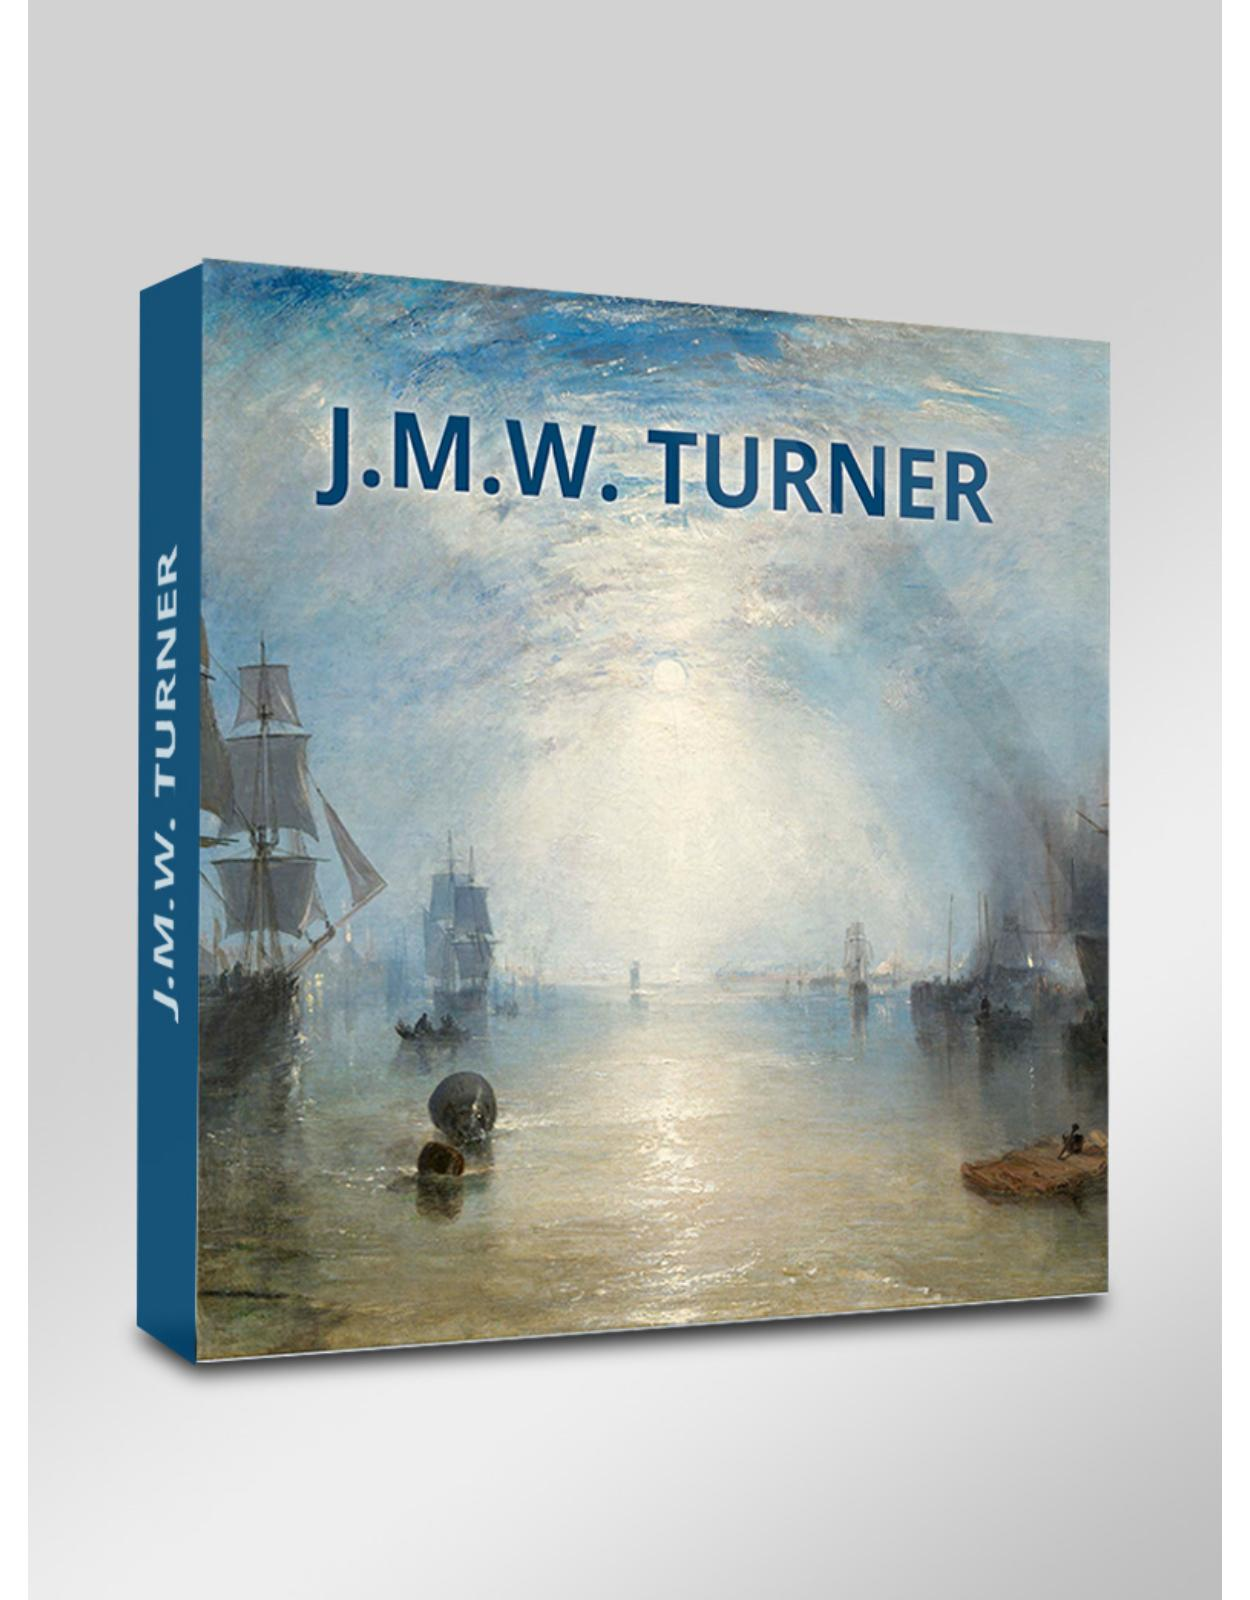 Album de arta William Turner